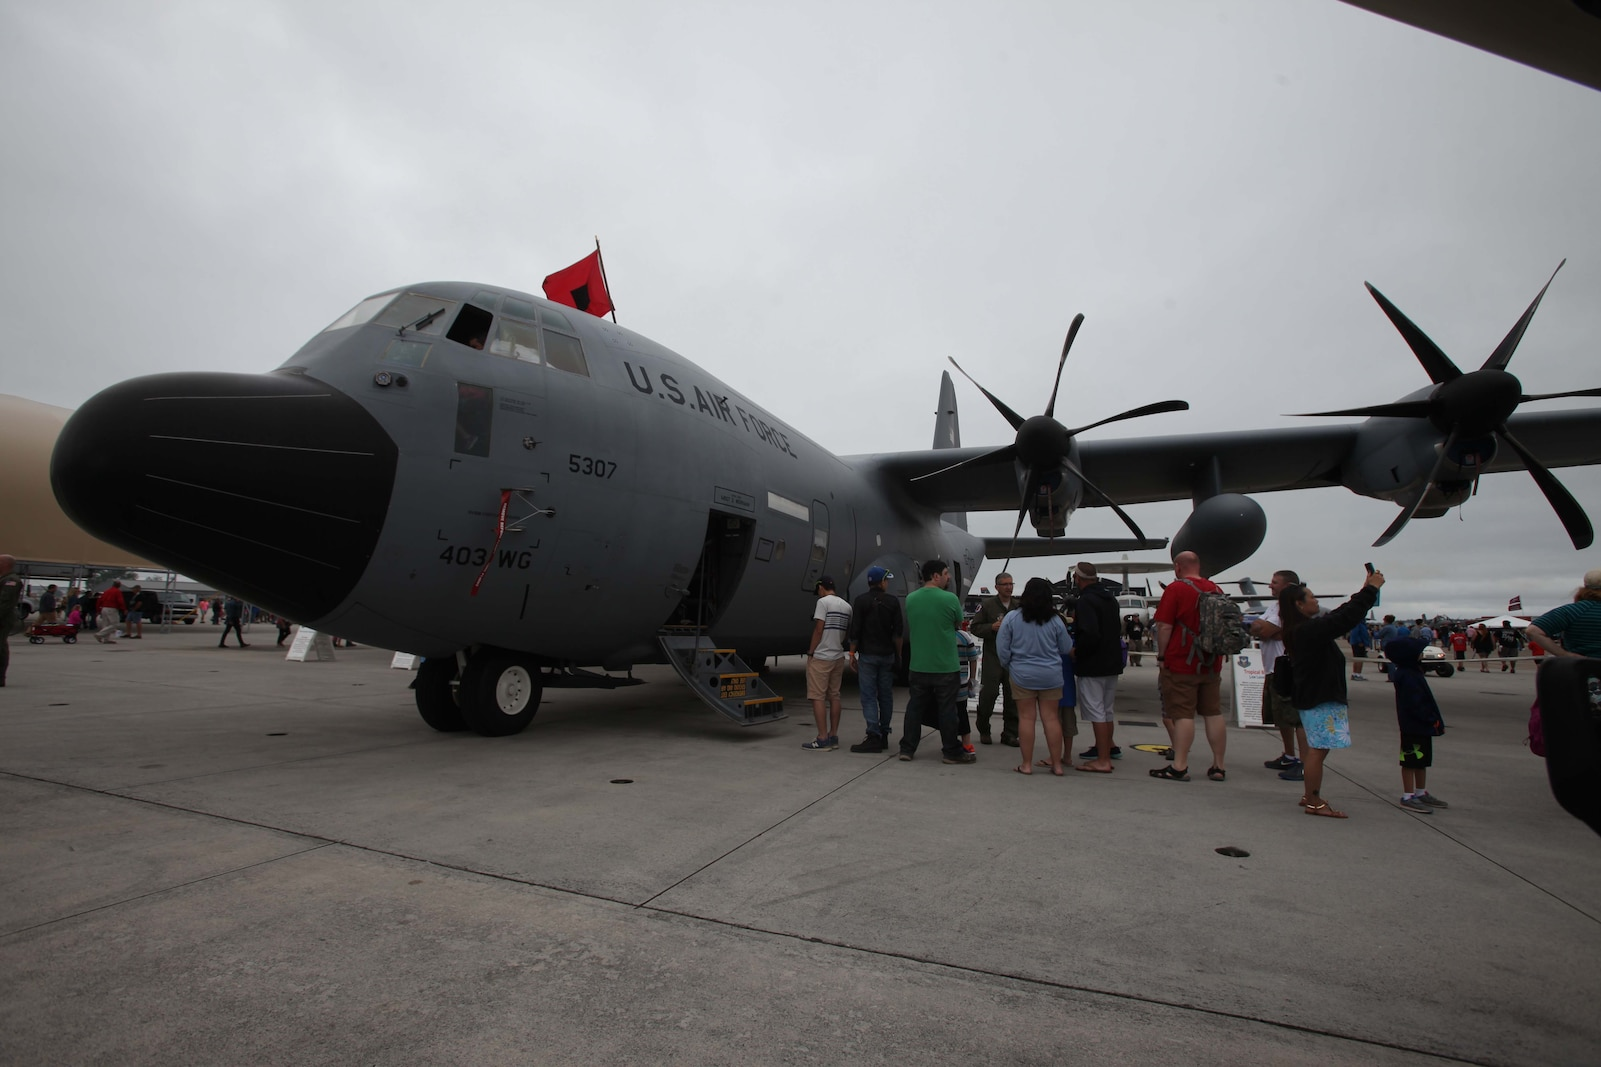 """A WC-130 """"Hurricane Hunter"""" is presented to a crowd at the 2016 Marine Corps Air Station Cherry Point Air Show – """"Celebrating 75 Years"""" at MCAS Cherry Point, N.C., April 30, 2016. The WC-130 is a high-wing, medium-range aircraft used for weather reconnaissance missions by the United States Air Force. The aircraft is a modified version of the C-130 Hercules transport configured with specialized weather instrumentation used for penetration of tropical cyclones and winter storms to obtain data on movement, size and intensity. This year's air show celebrated MCAS Cherry Point and 2nd Marine Aircraft Wing's 75th anniversaries and featured 40 static displays, 17 aerial performers and a concert. #CPAirShow2016 #Marines"""